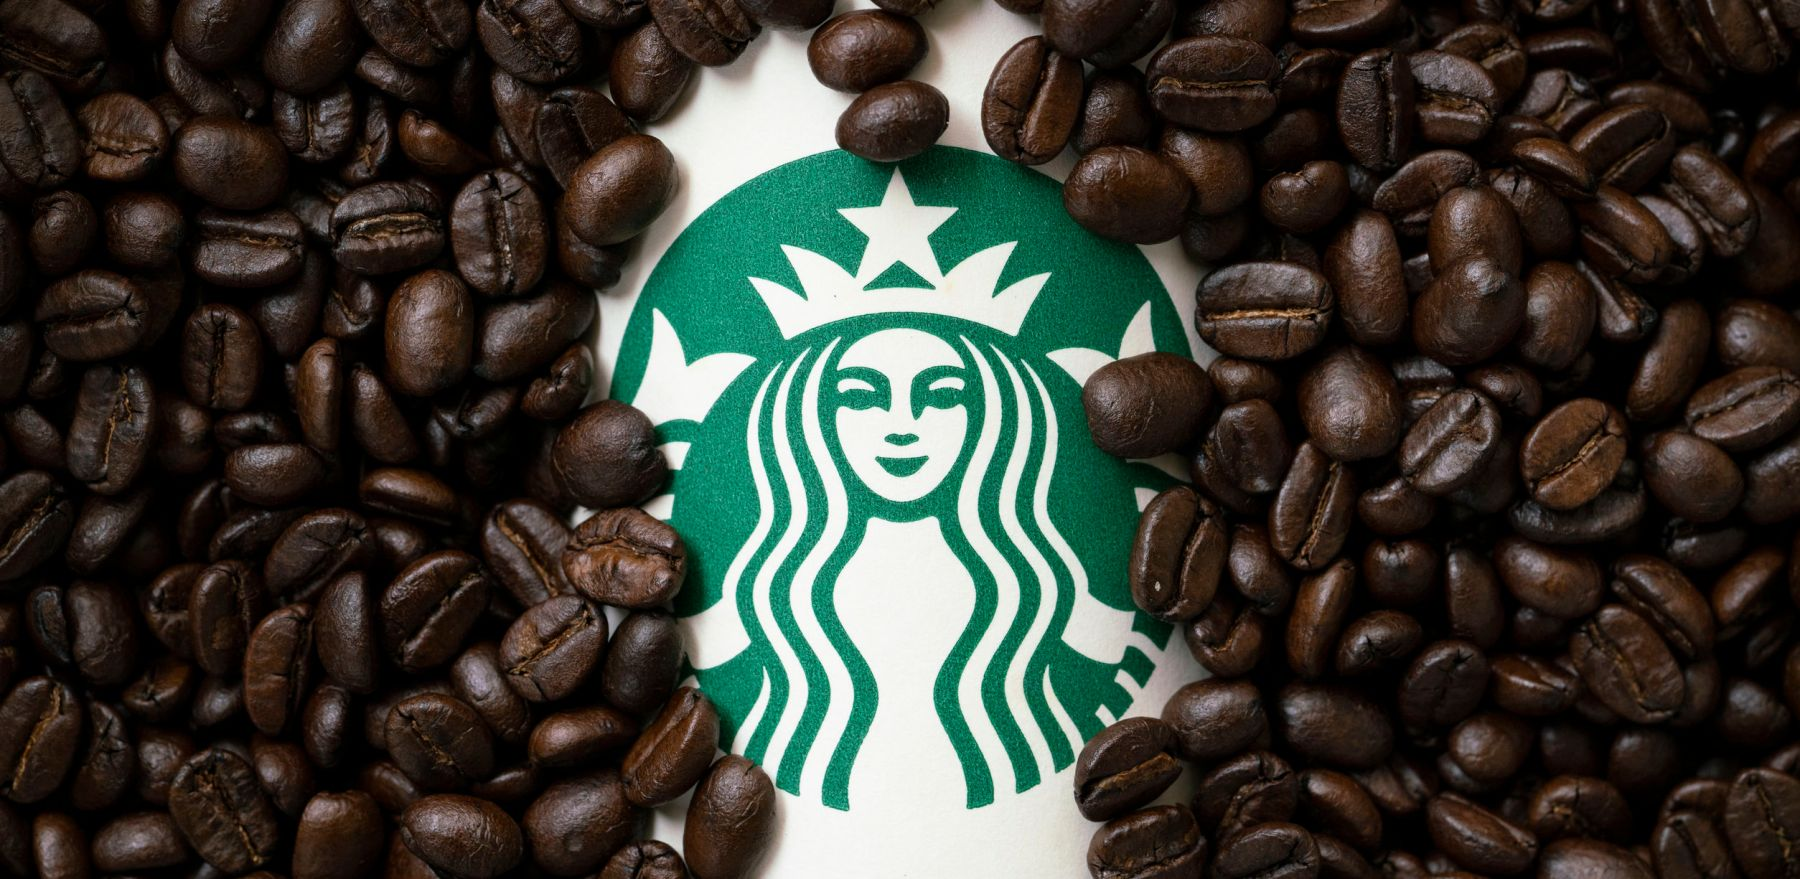 Bangkok, Thailand - Aug 26, 2018: A cup of Starbuck coffee with coffee beans background